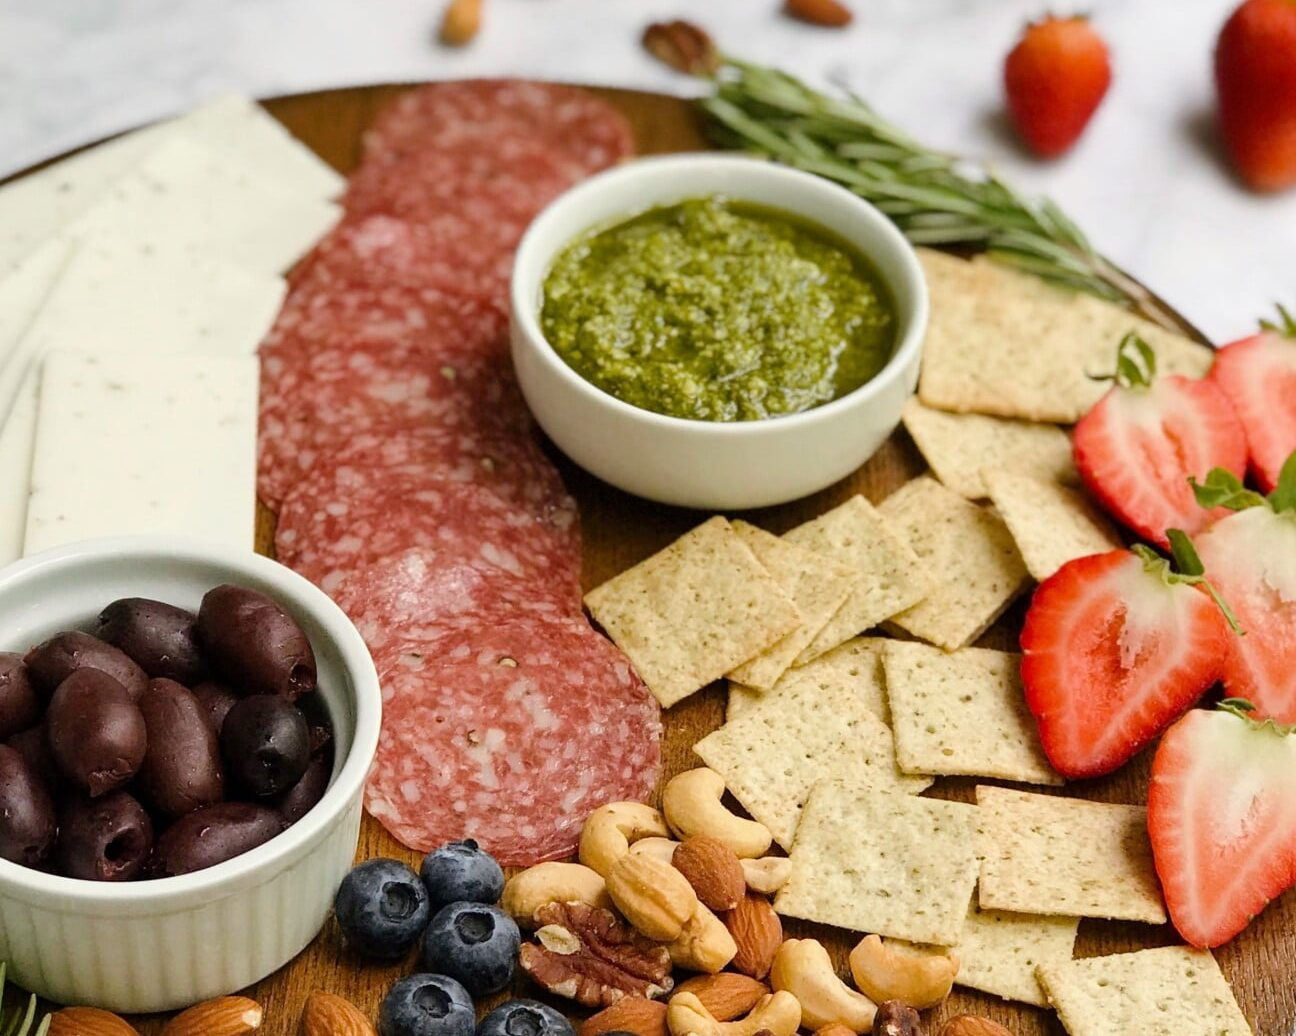 How to Make a Gluten-free and Dairy-free Charcuterie Board